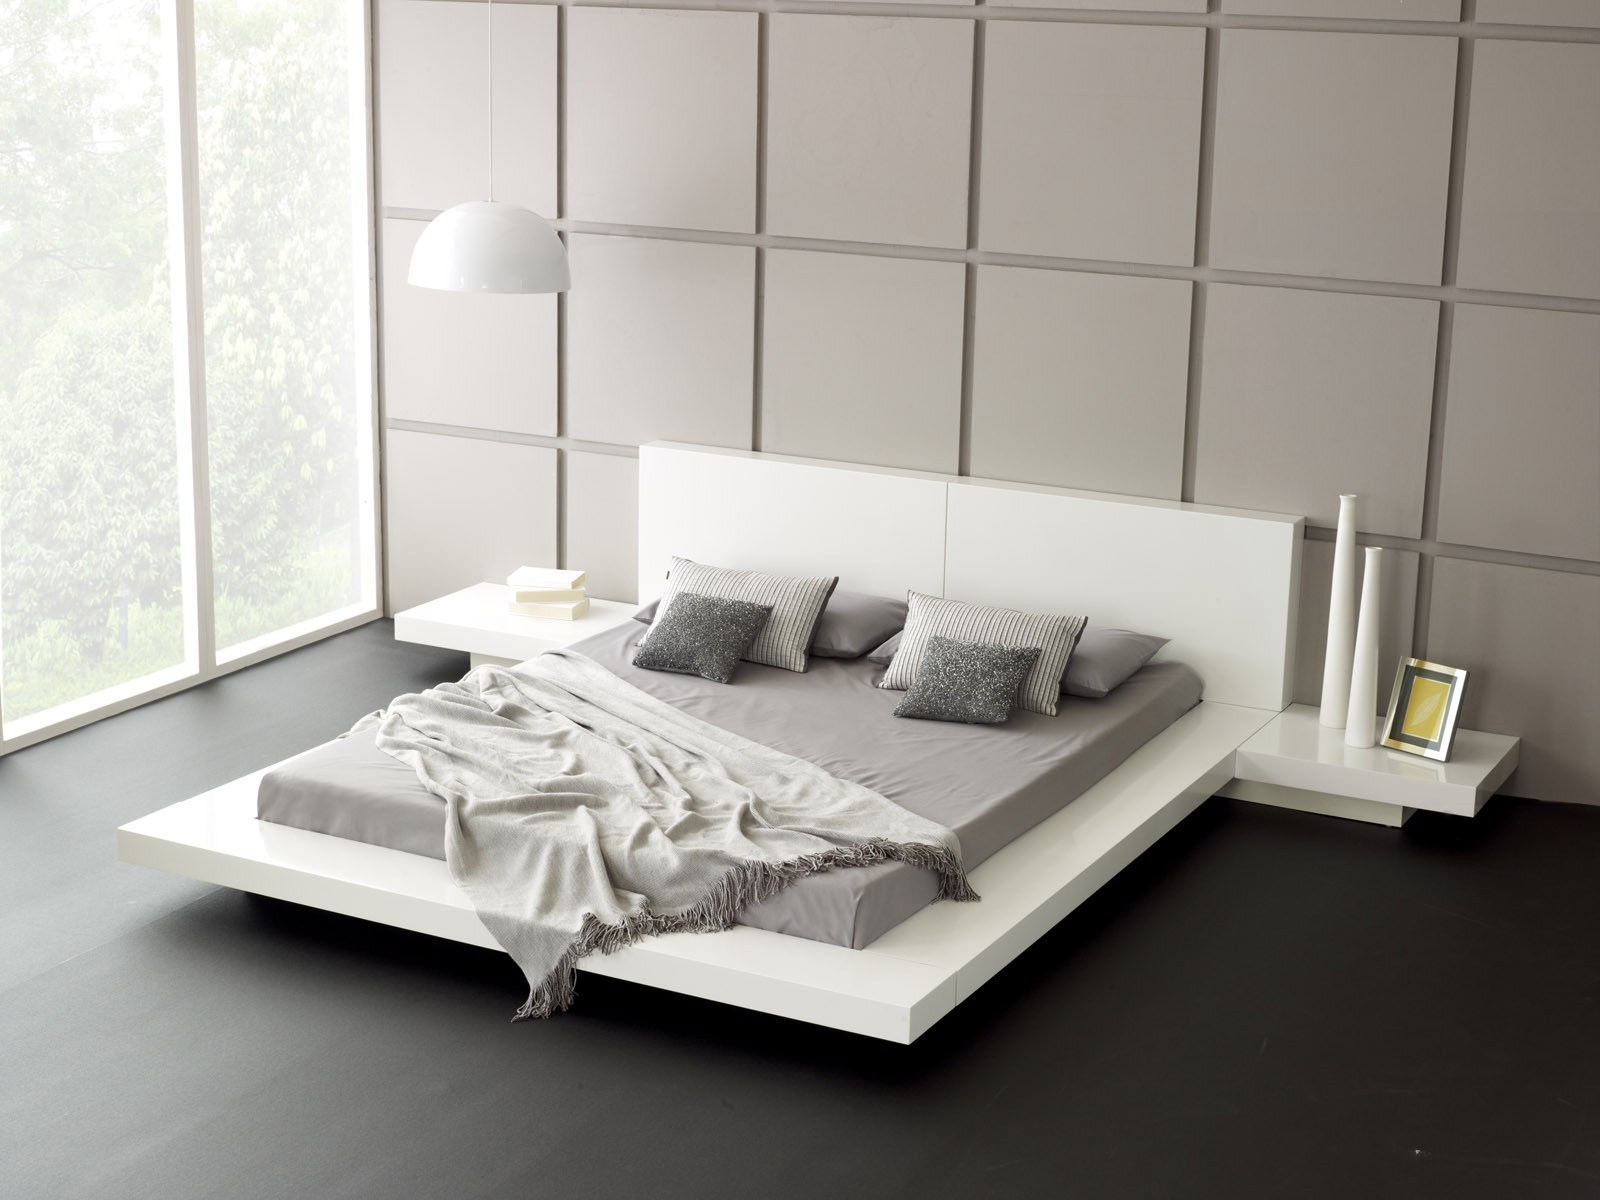 Remarkable White Bedroom Furniture Design Ideas 1600 x 1200 · 205 kB · jpeg